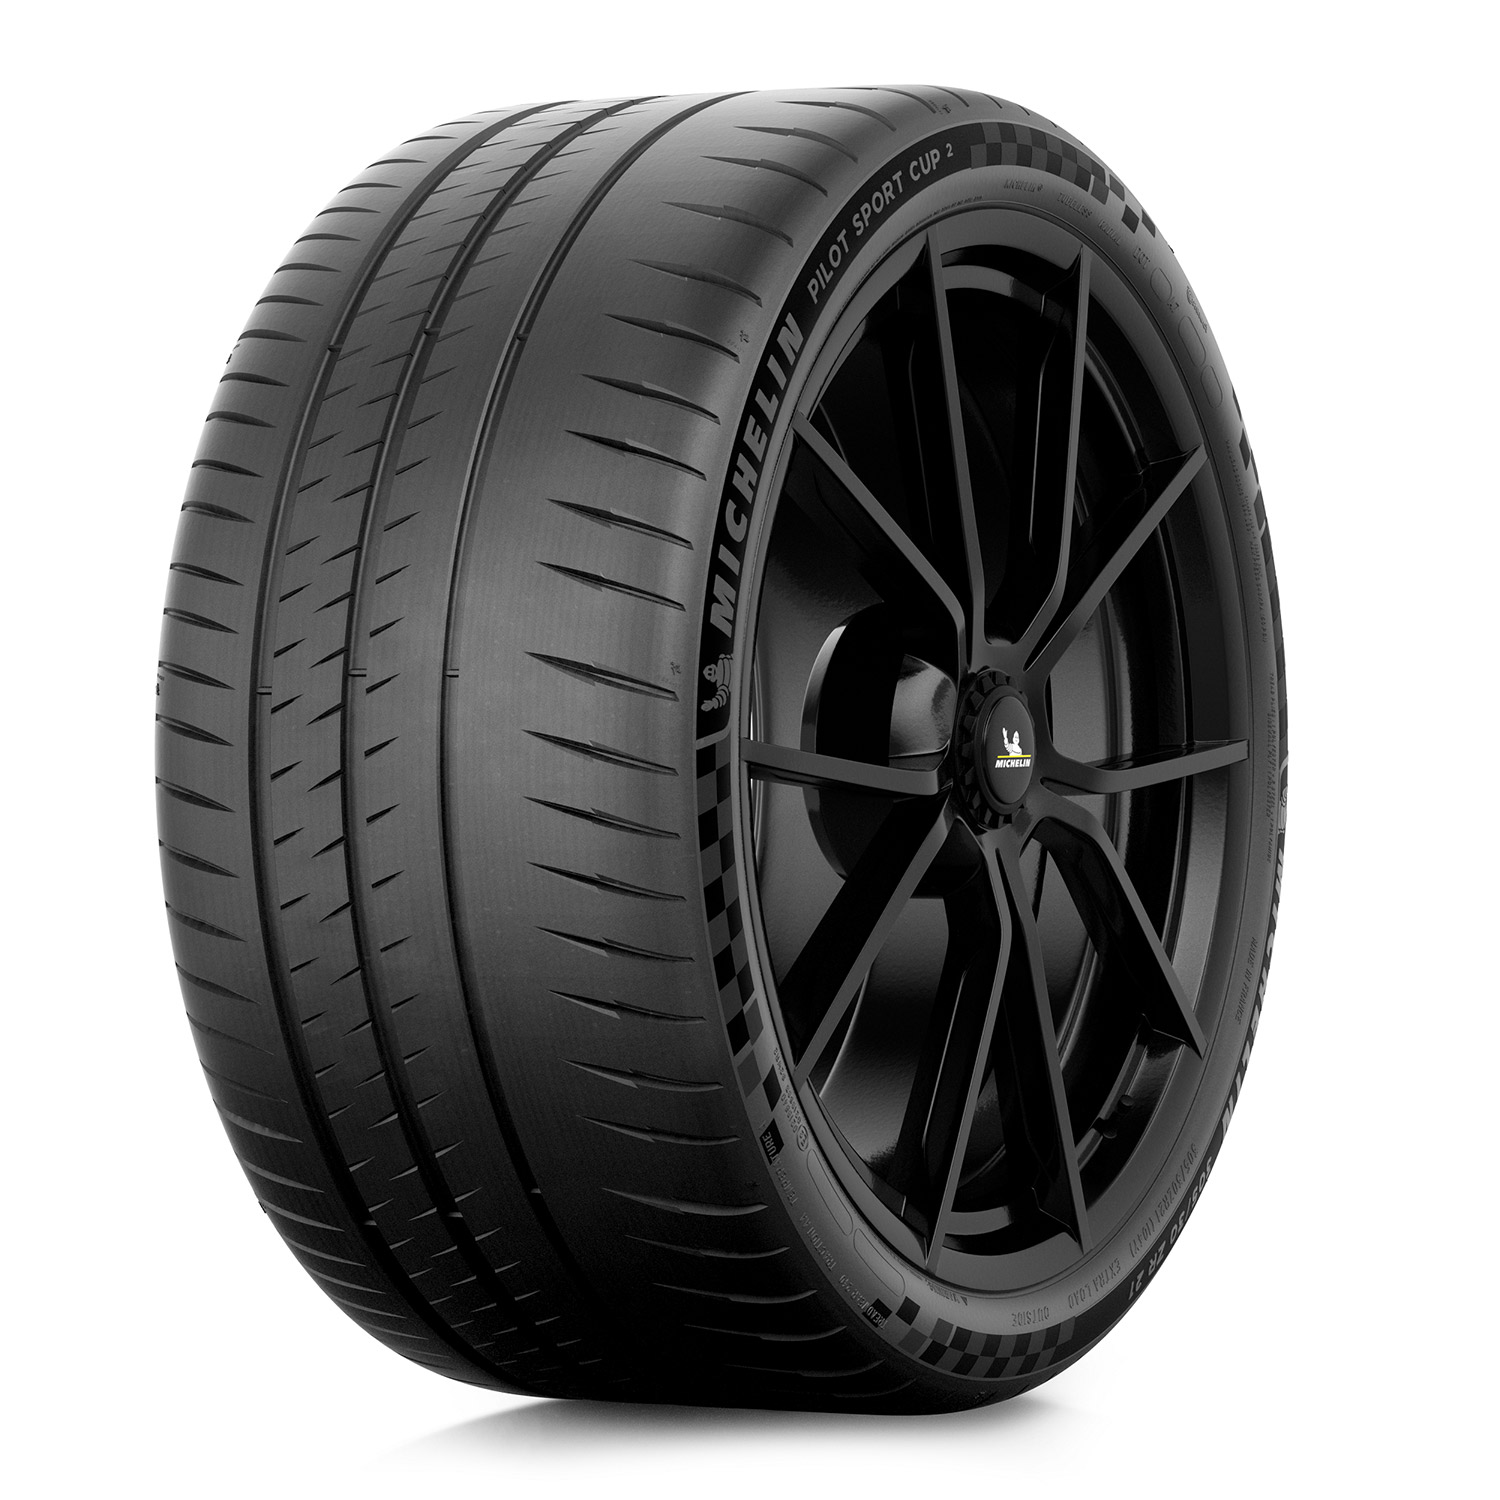 MICHELIN PILOT SPORT CUP 2 CONNECT タイヤ画像